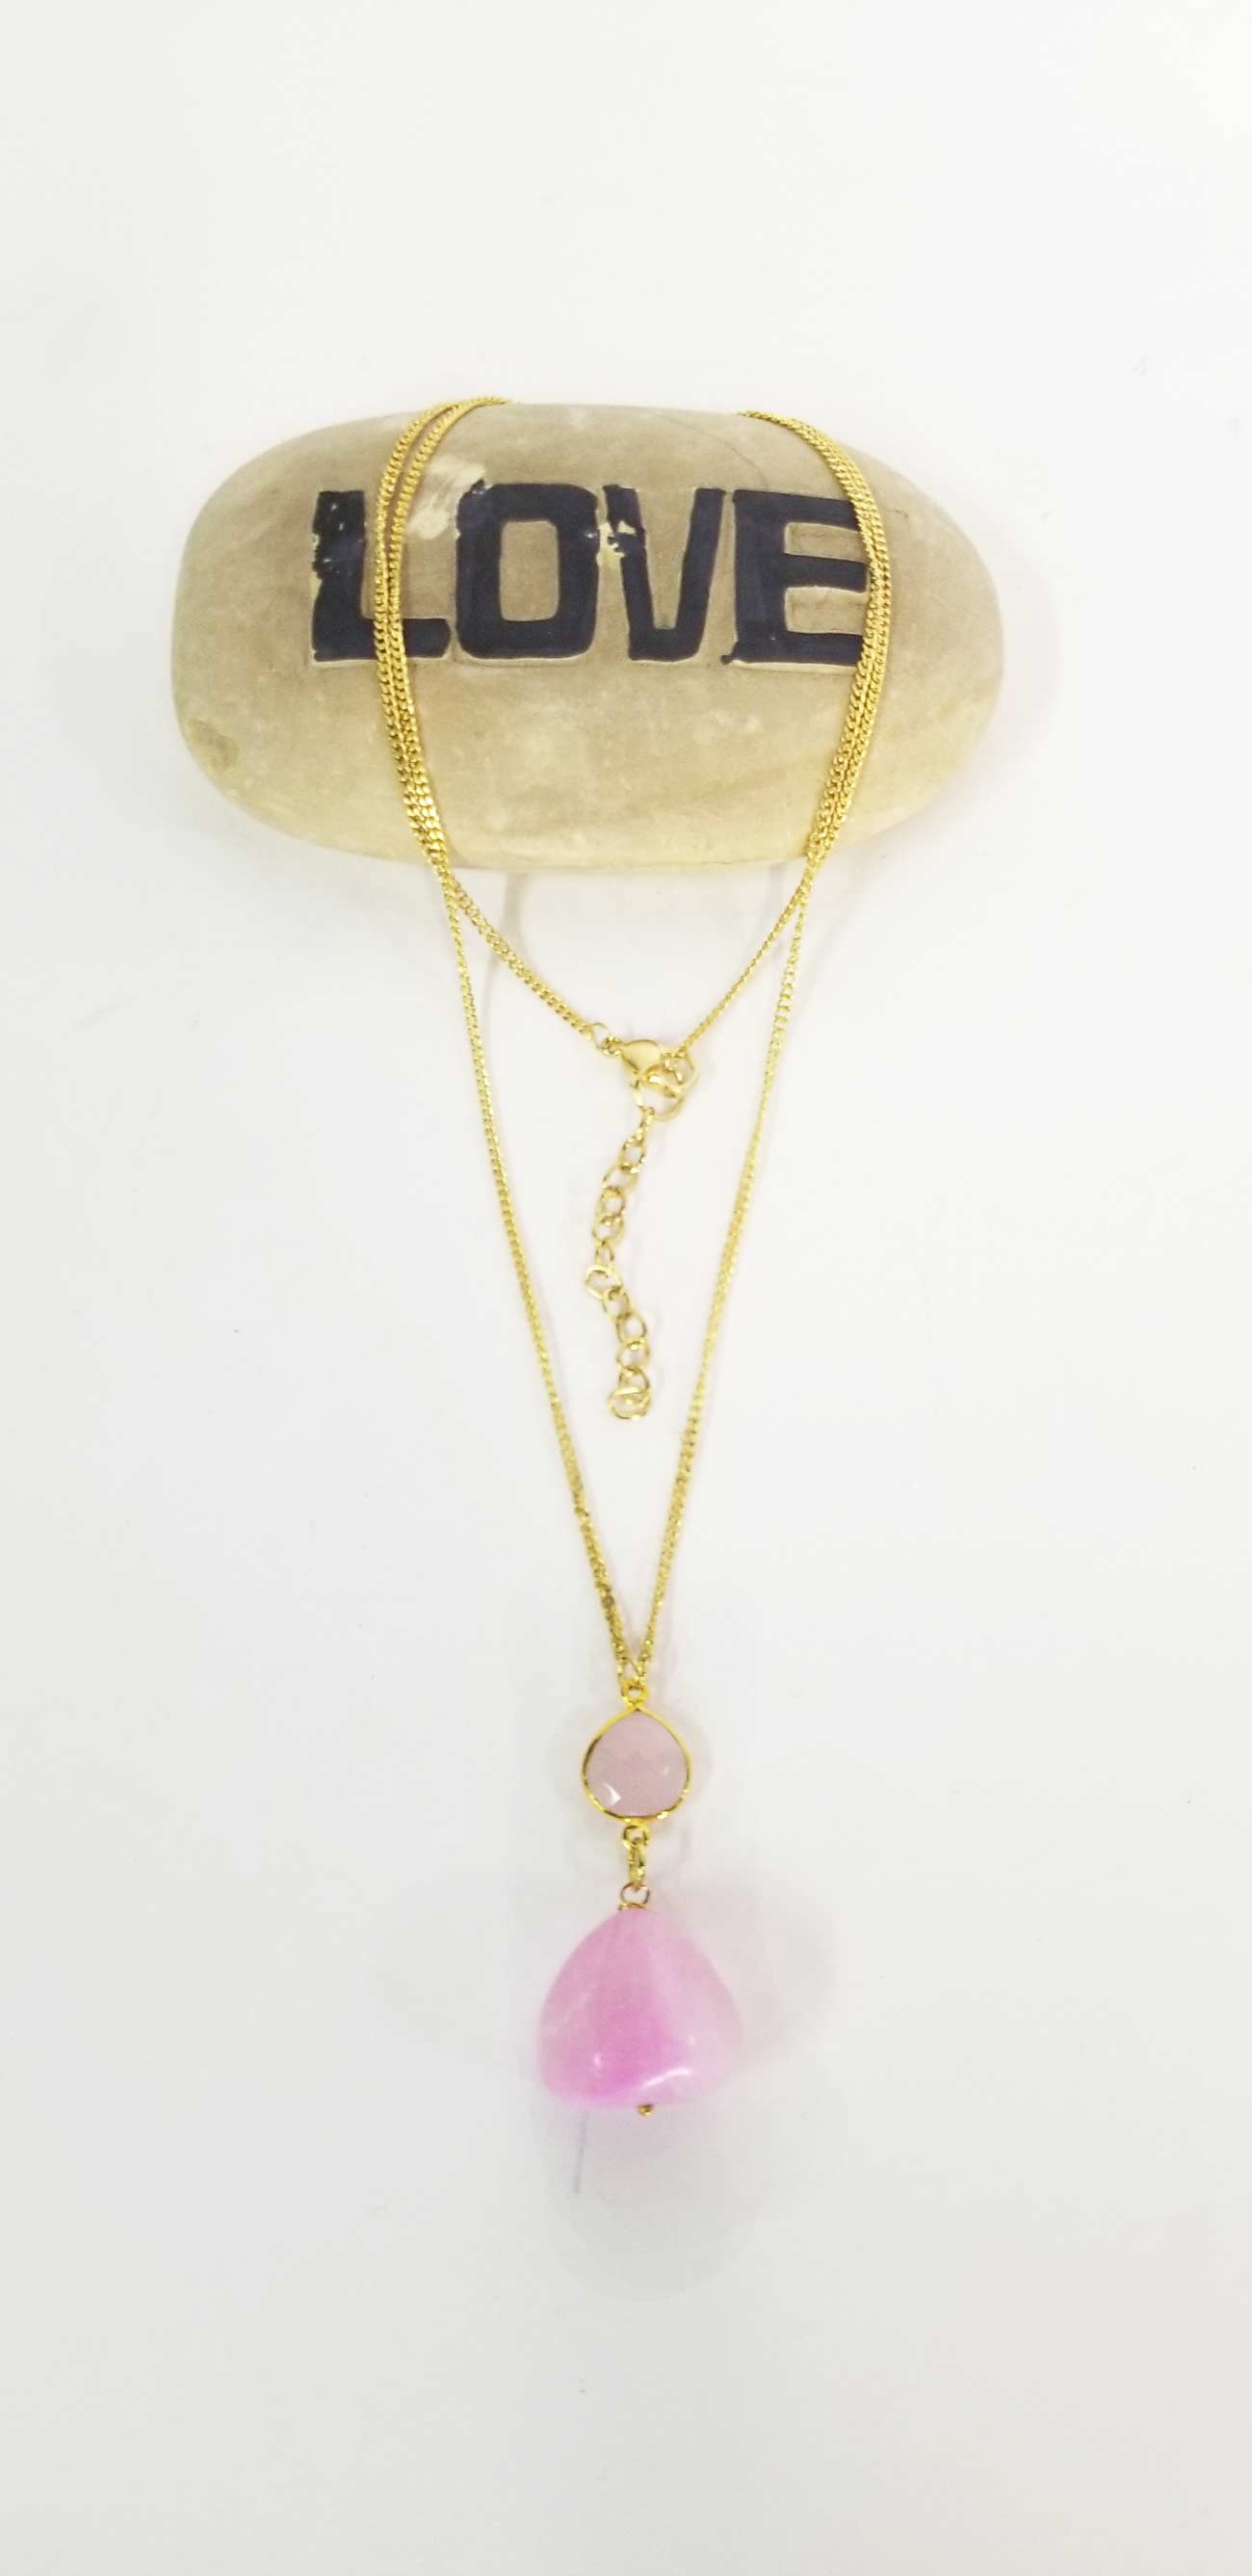 Accessories | Mala | Long Necklace Rose Quartz